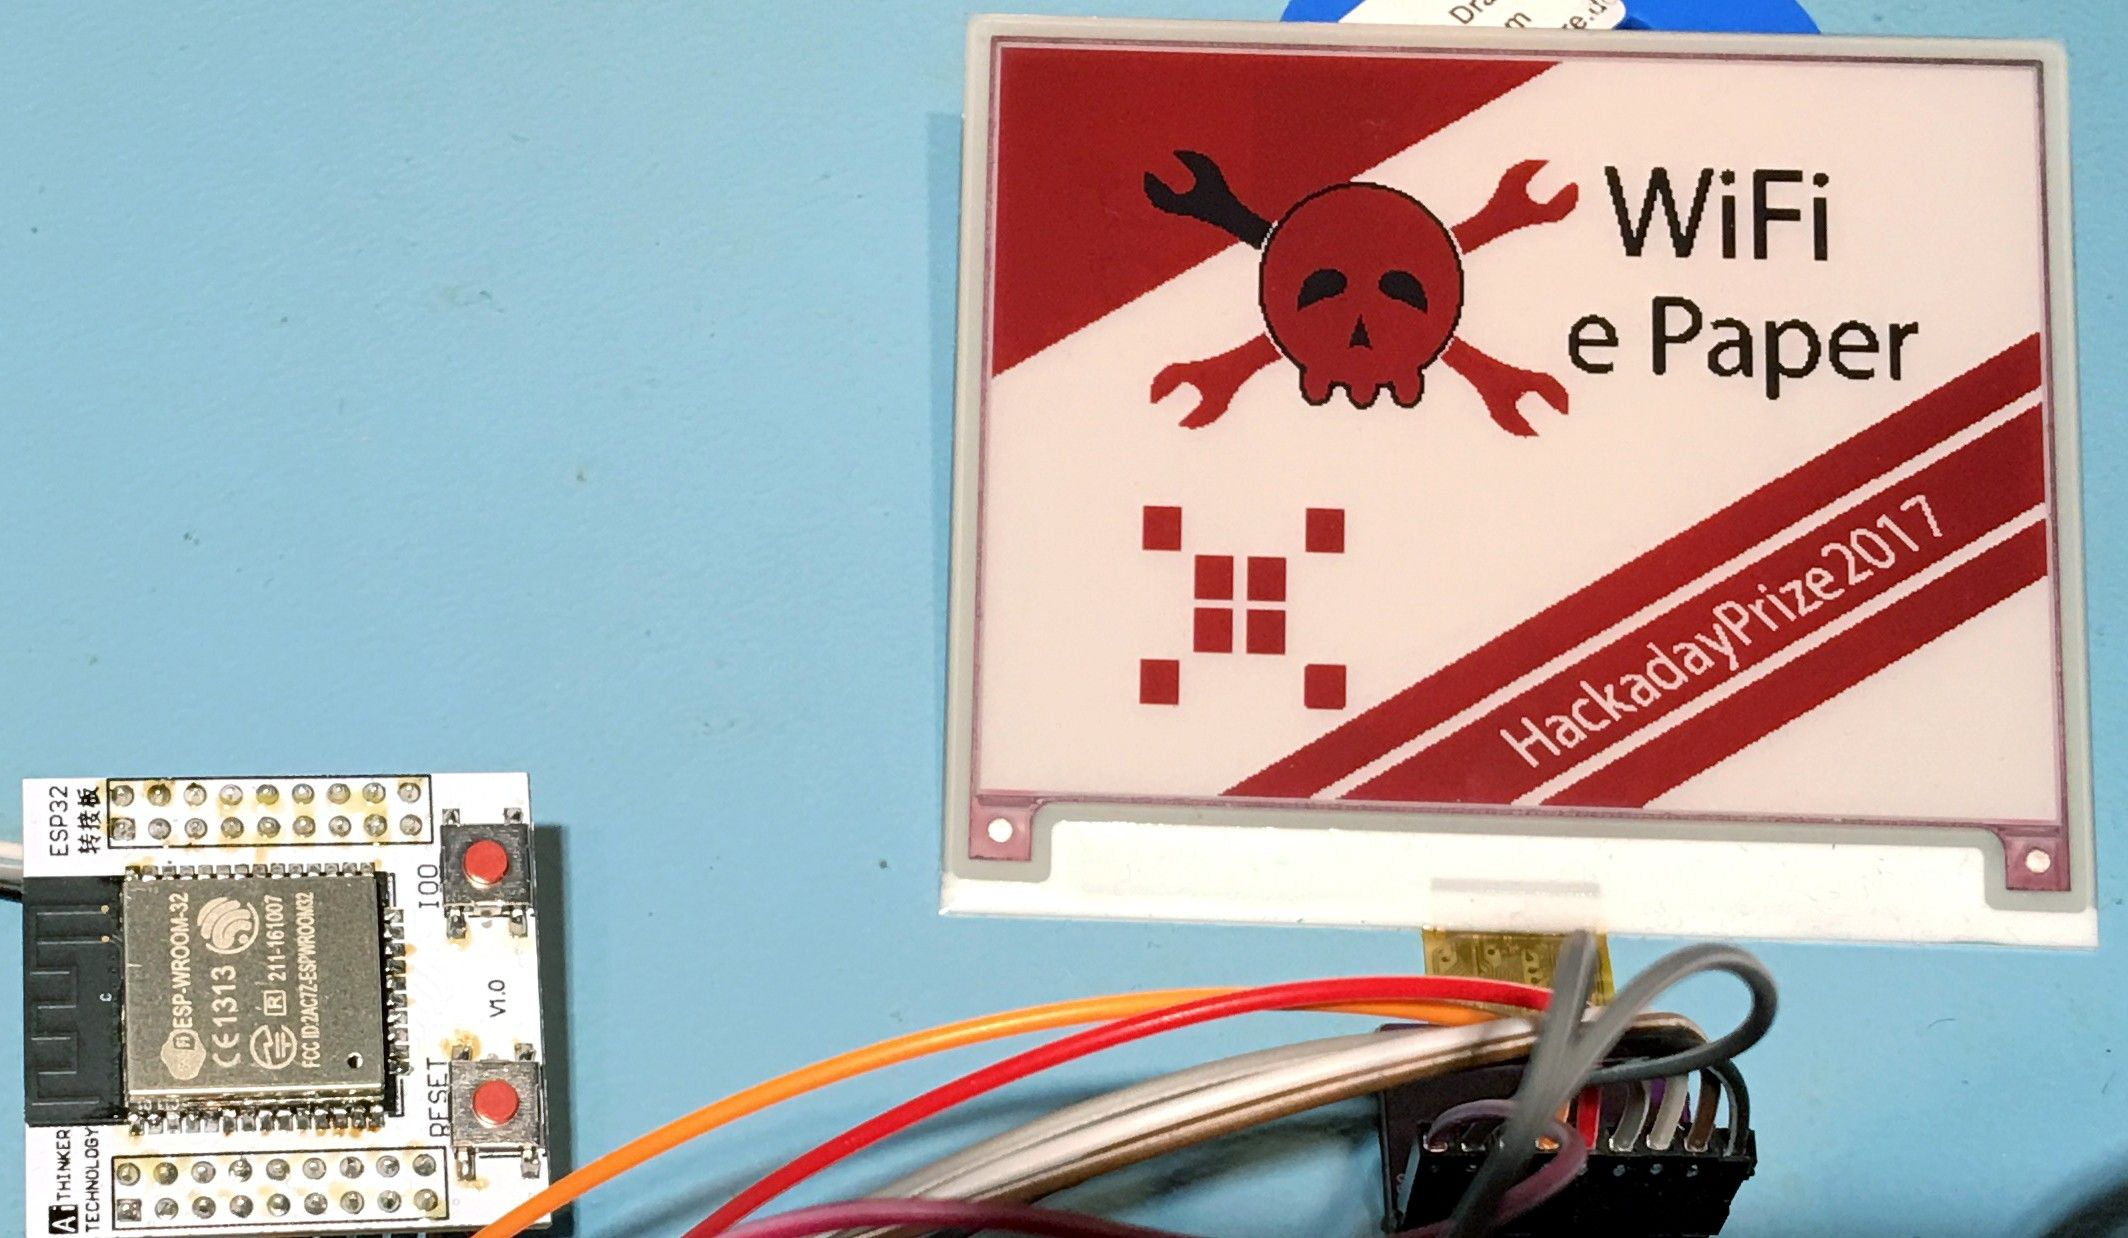 A solar powered ePaper with an ESP32 to update the display over WiFi